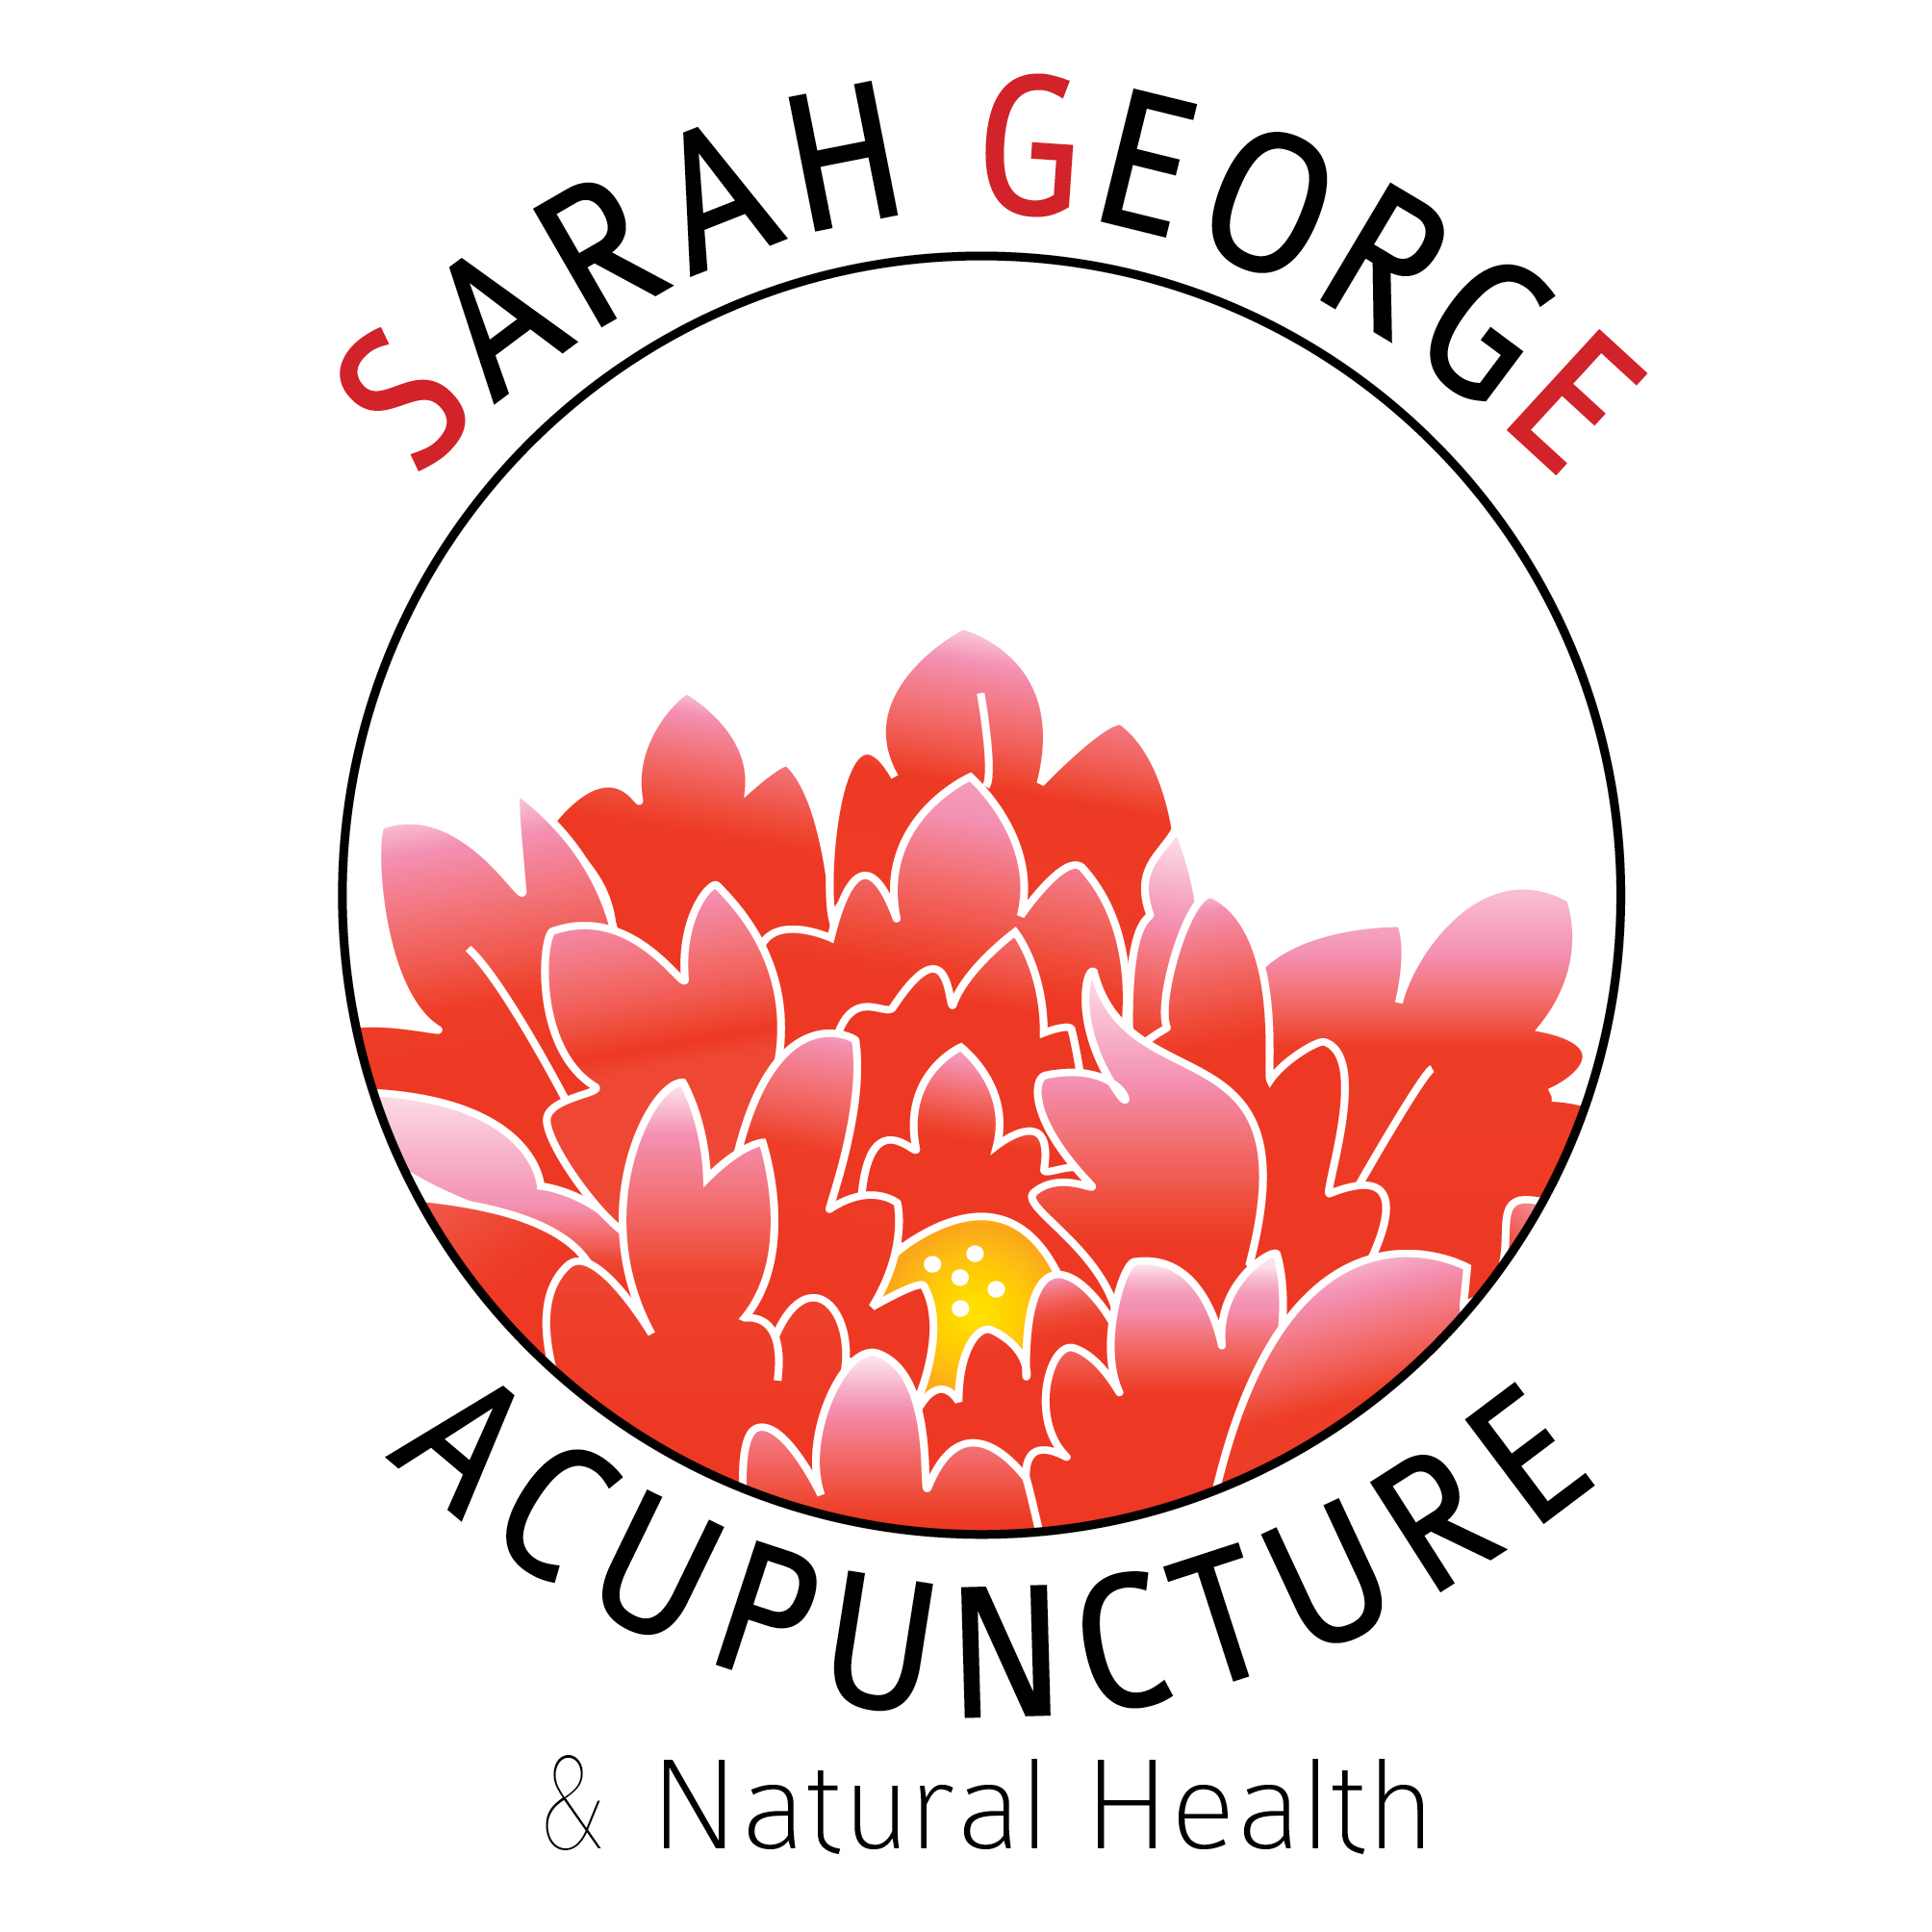 Sarah George Acupuncture and Natural Health